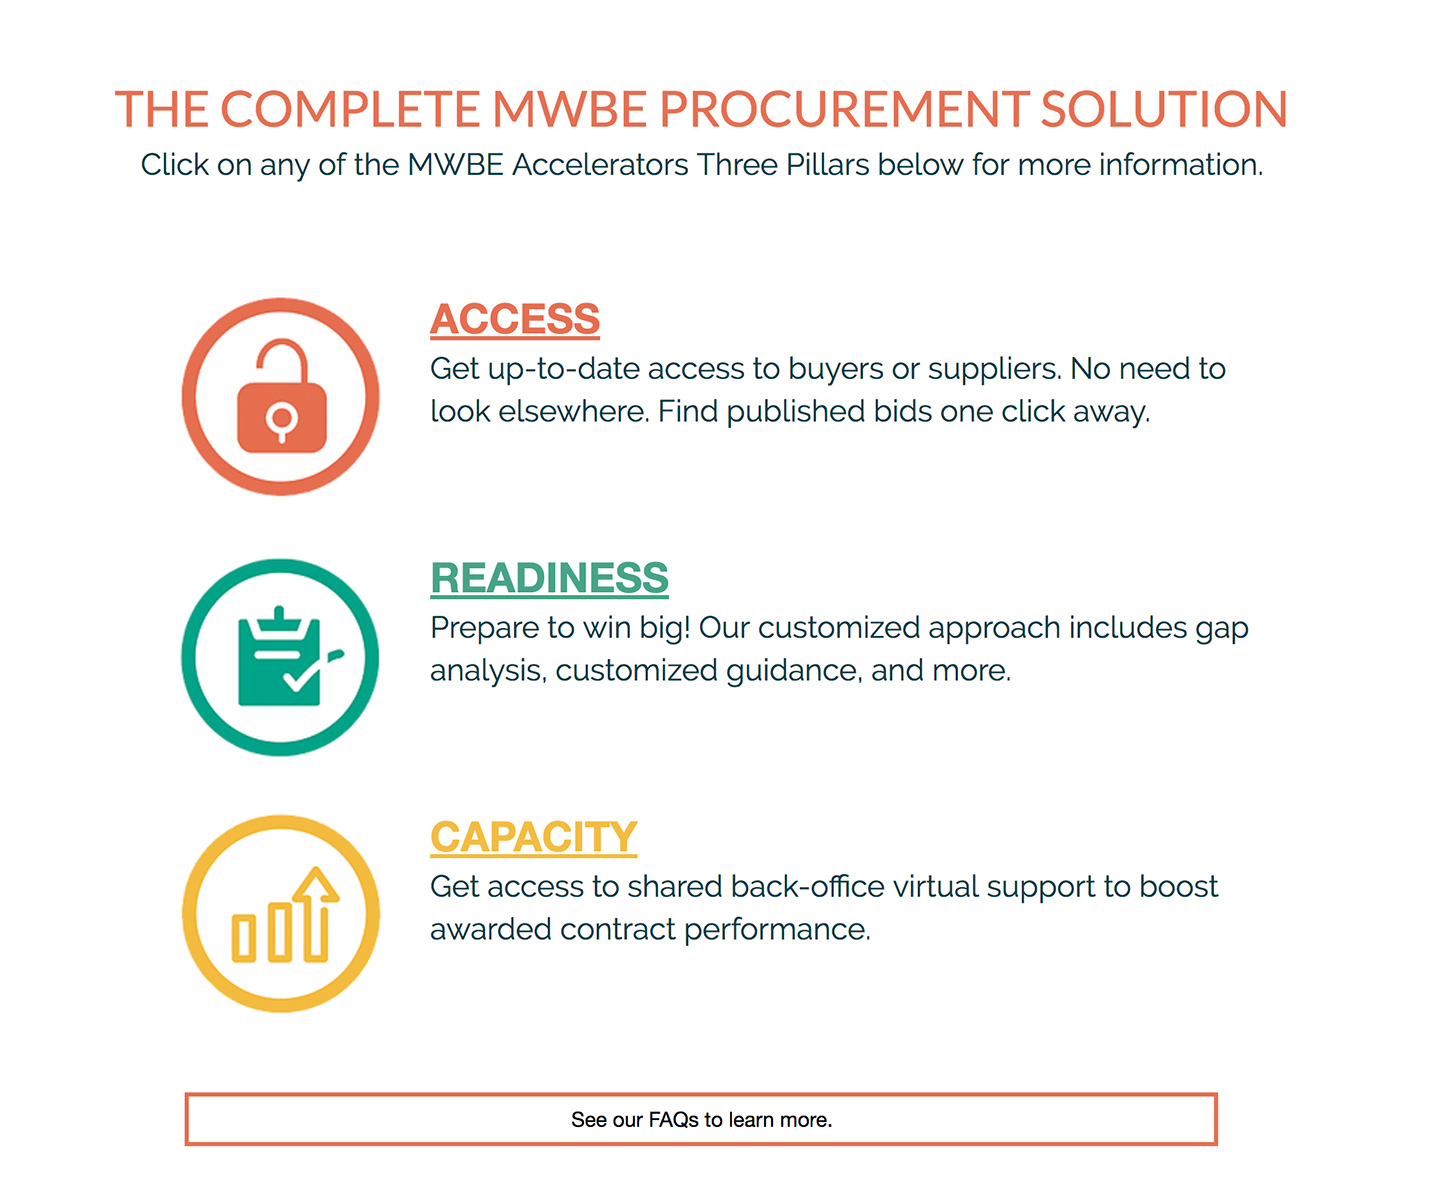 Harlem Commonwealth Council MWBE Accelerator: MWBE Procurement Solutions